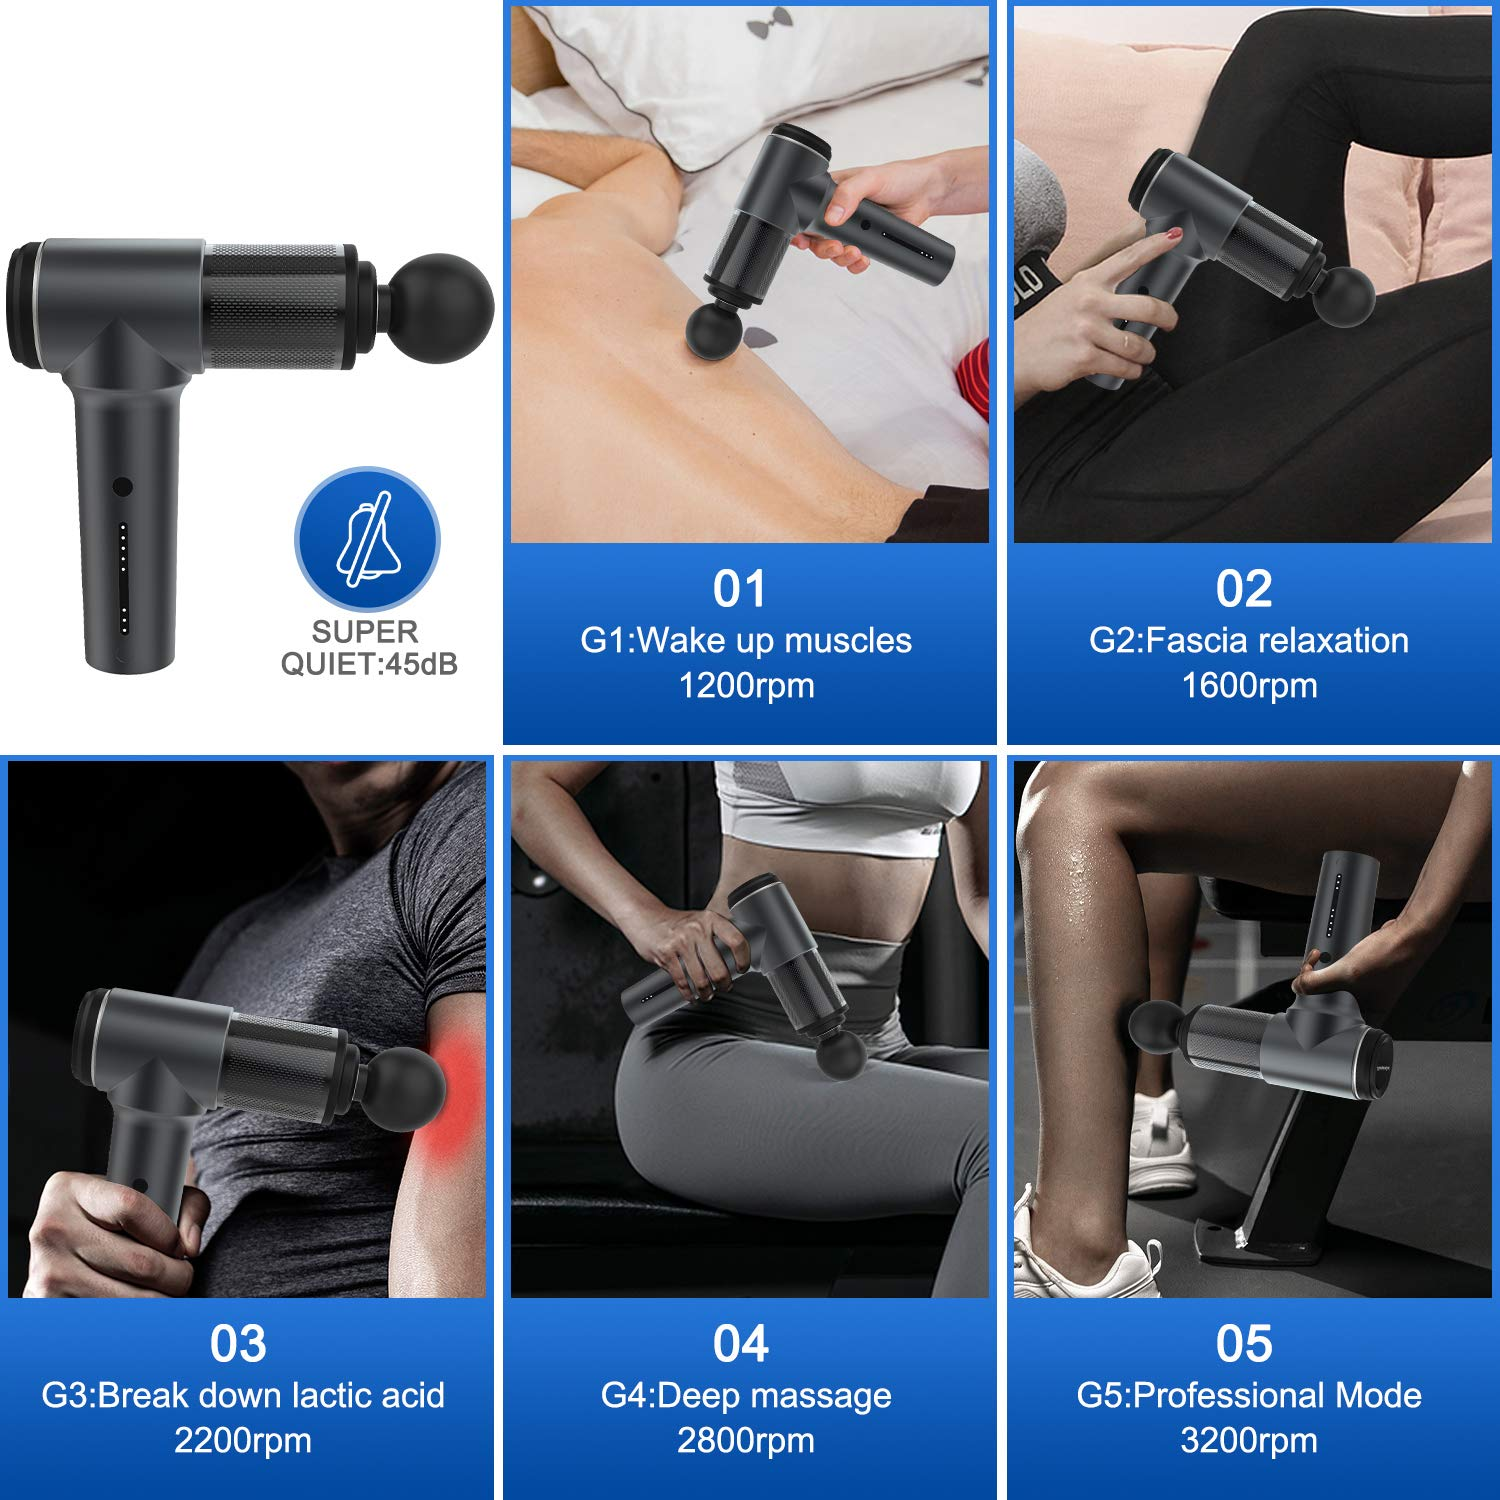 ChampionGun Super Quiet Massage Gun Deep Tissue Percussion Muscle Massager for Pain Relief, Handheld Vibration Cordless Body Massage Device with 6 Massage Heads & Portable Case (Black)